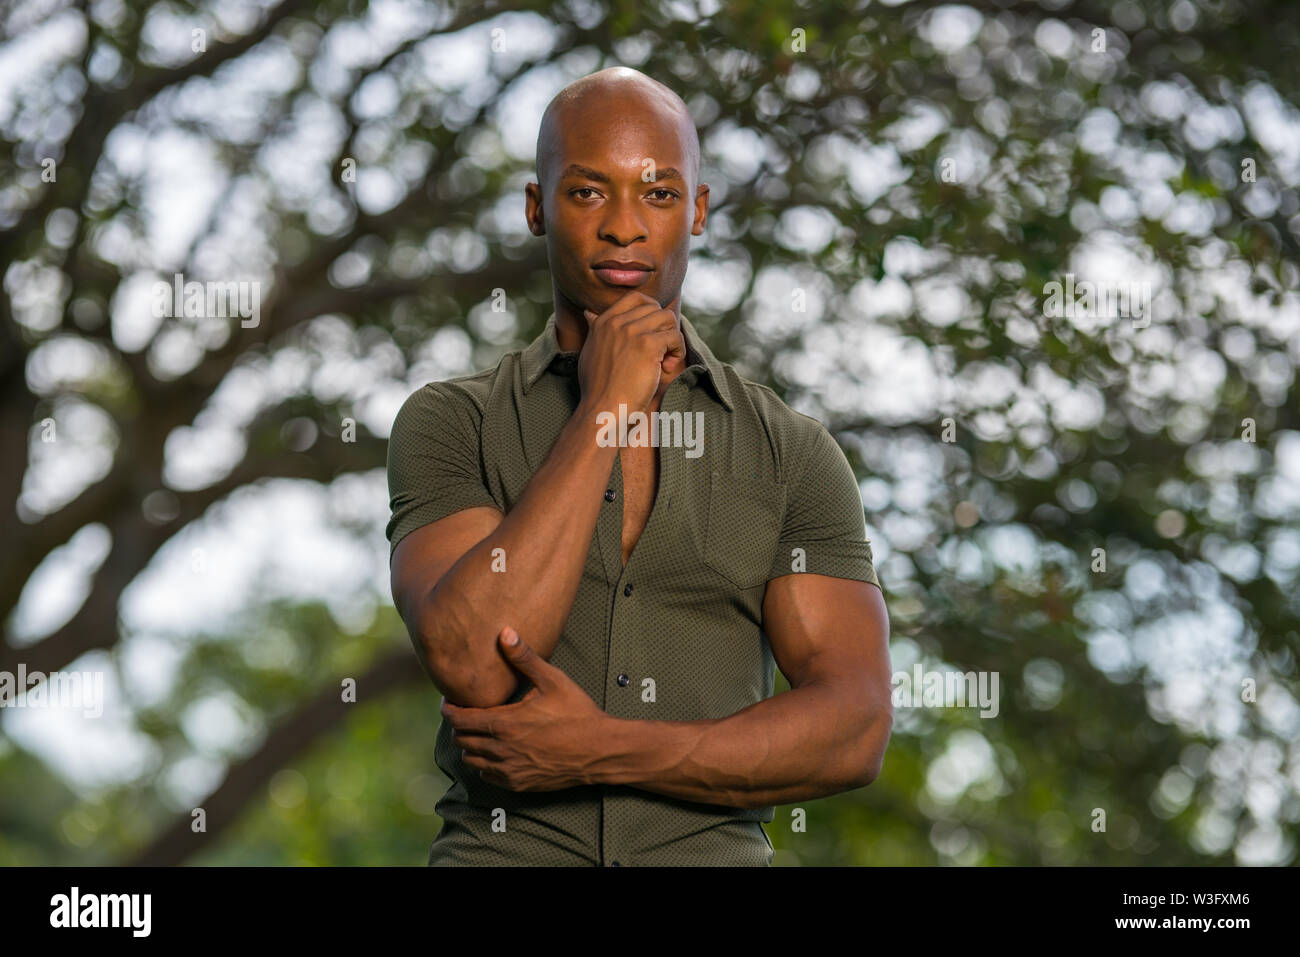 Handsome young African American man posing with hand on chin in a nature scene - Stock Image